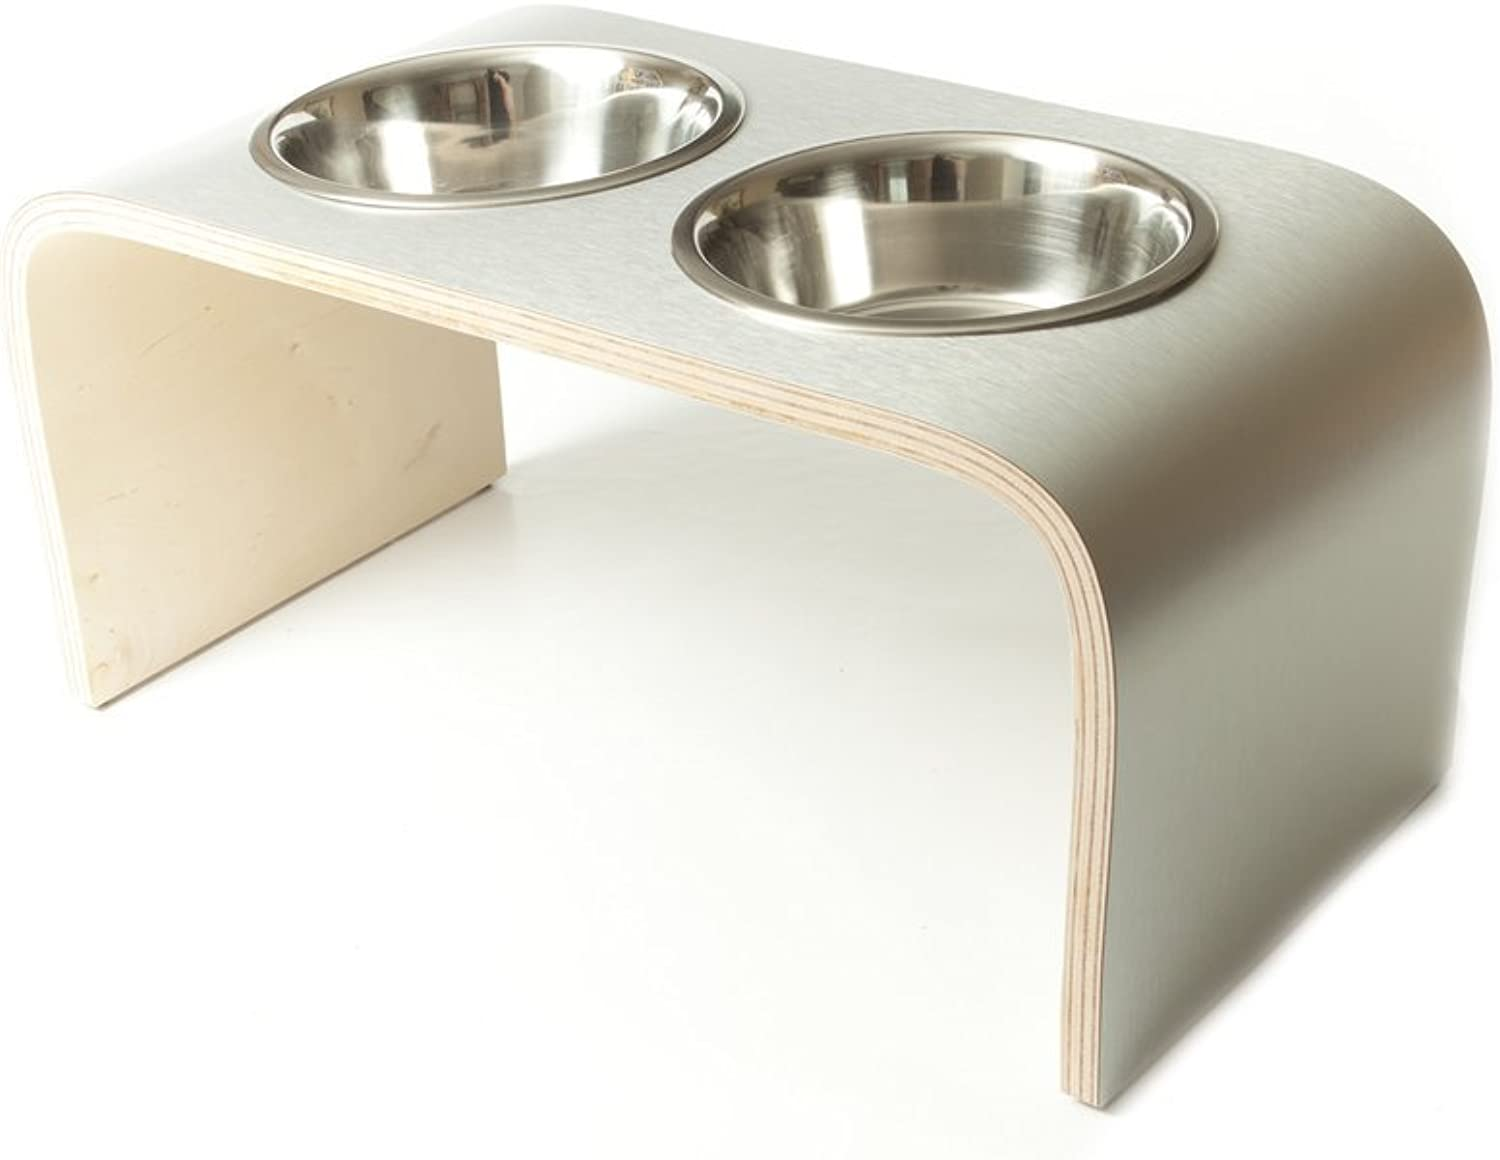 Lola and Daisy Designs XSmall Aluminium & Birch Raised Dog Bowl Double Pet Feeder Non Slip Feet Easy to Clean